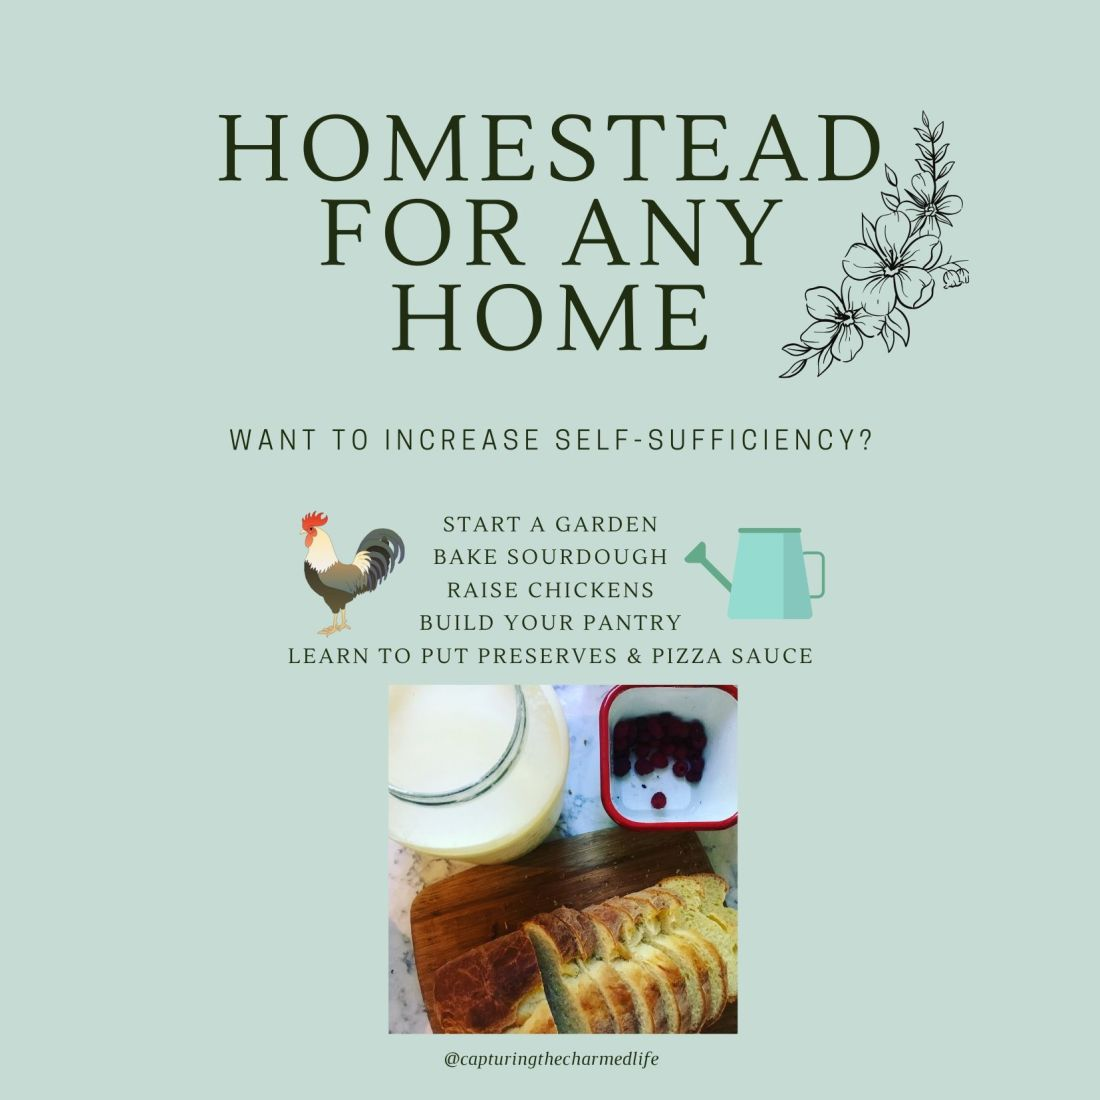 homestead for any home